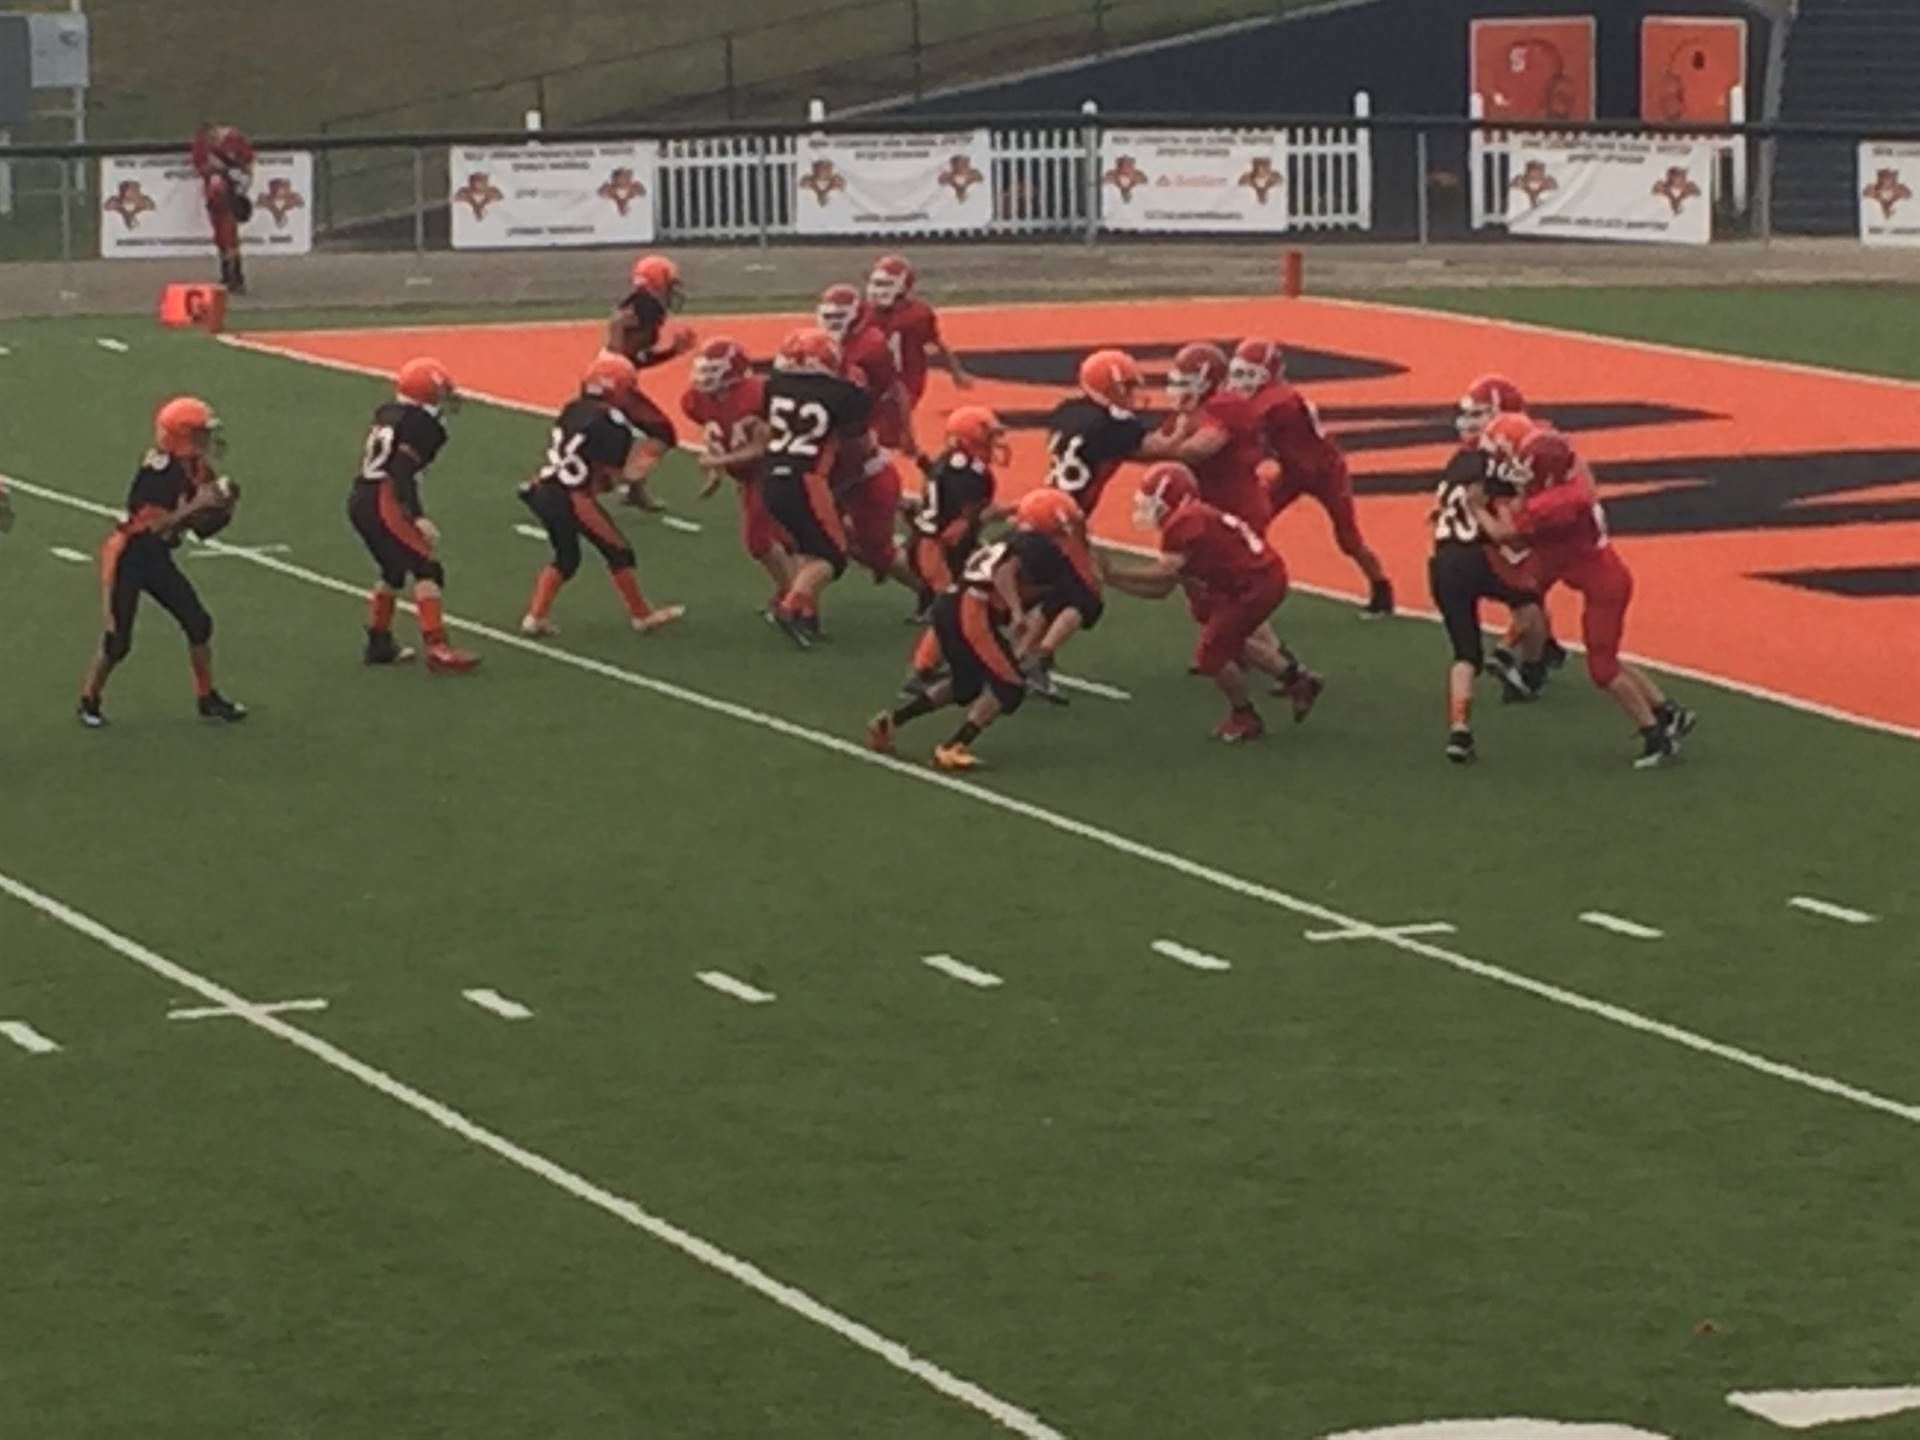 7th grade pushing for another TD!